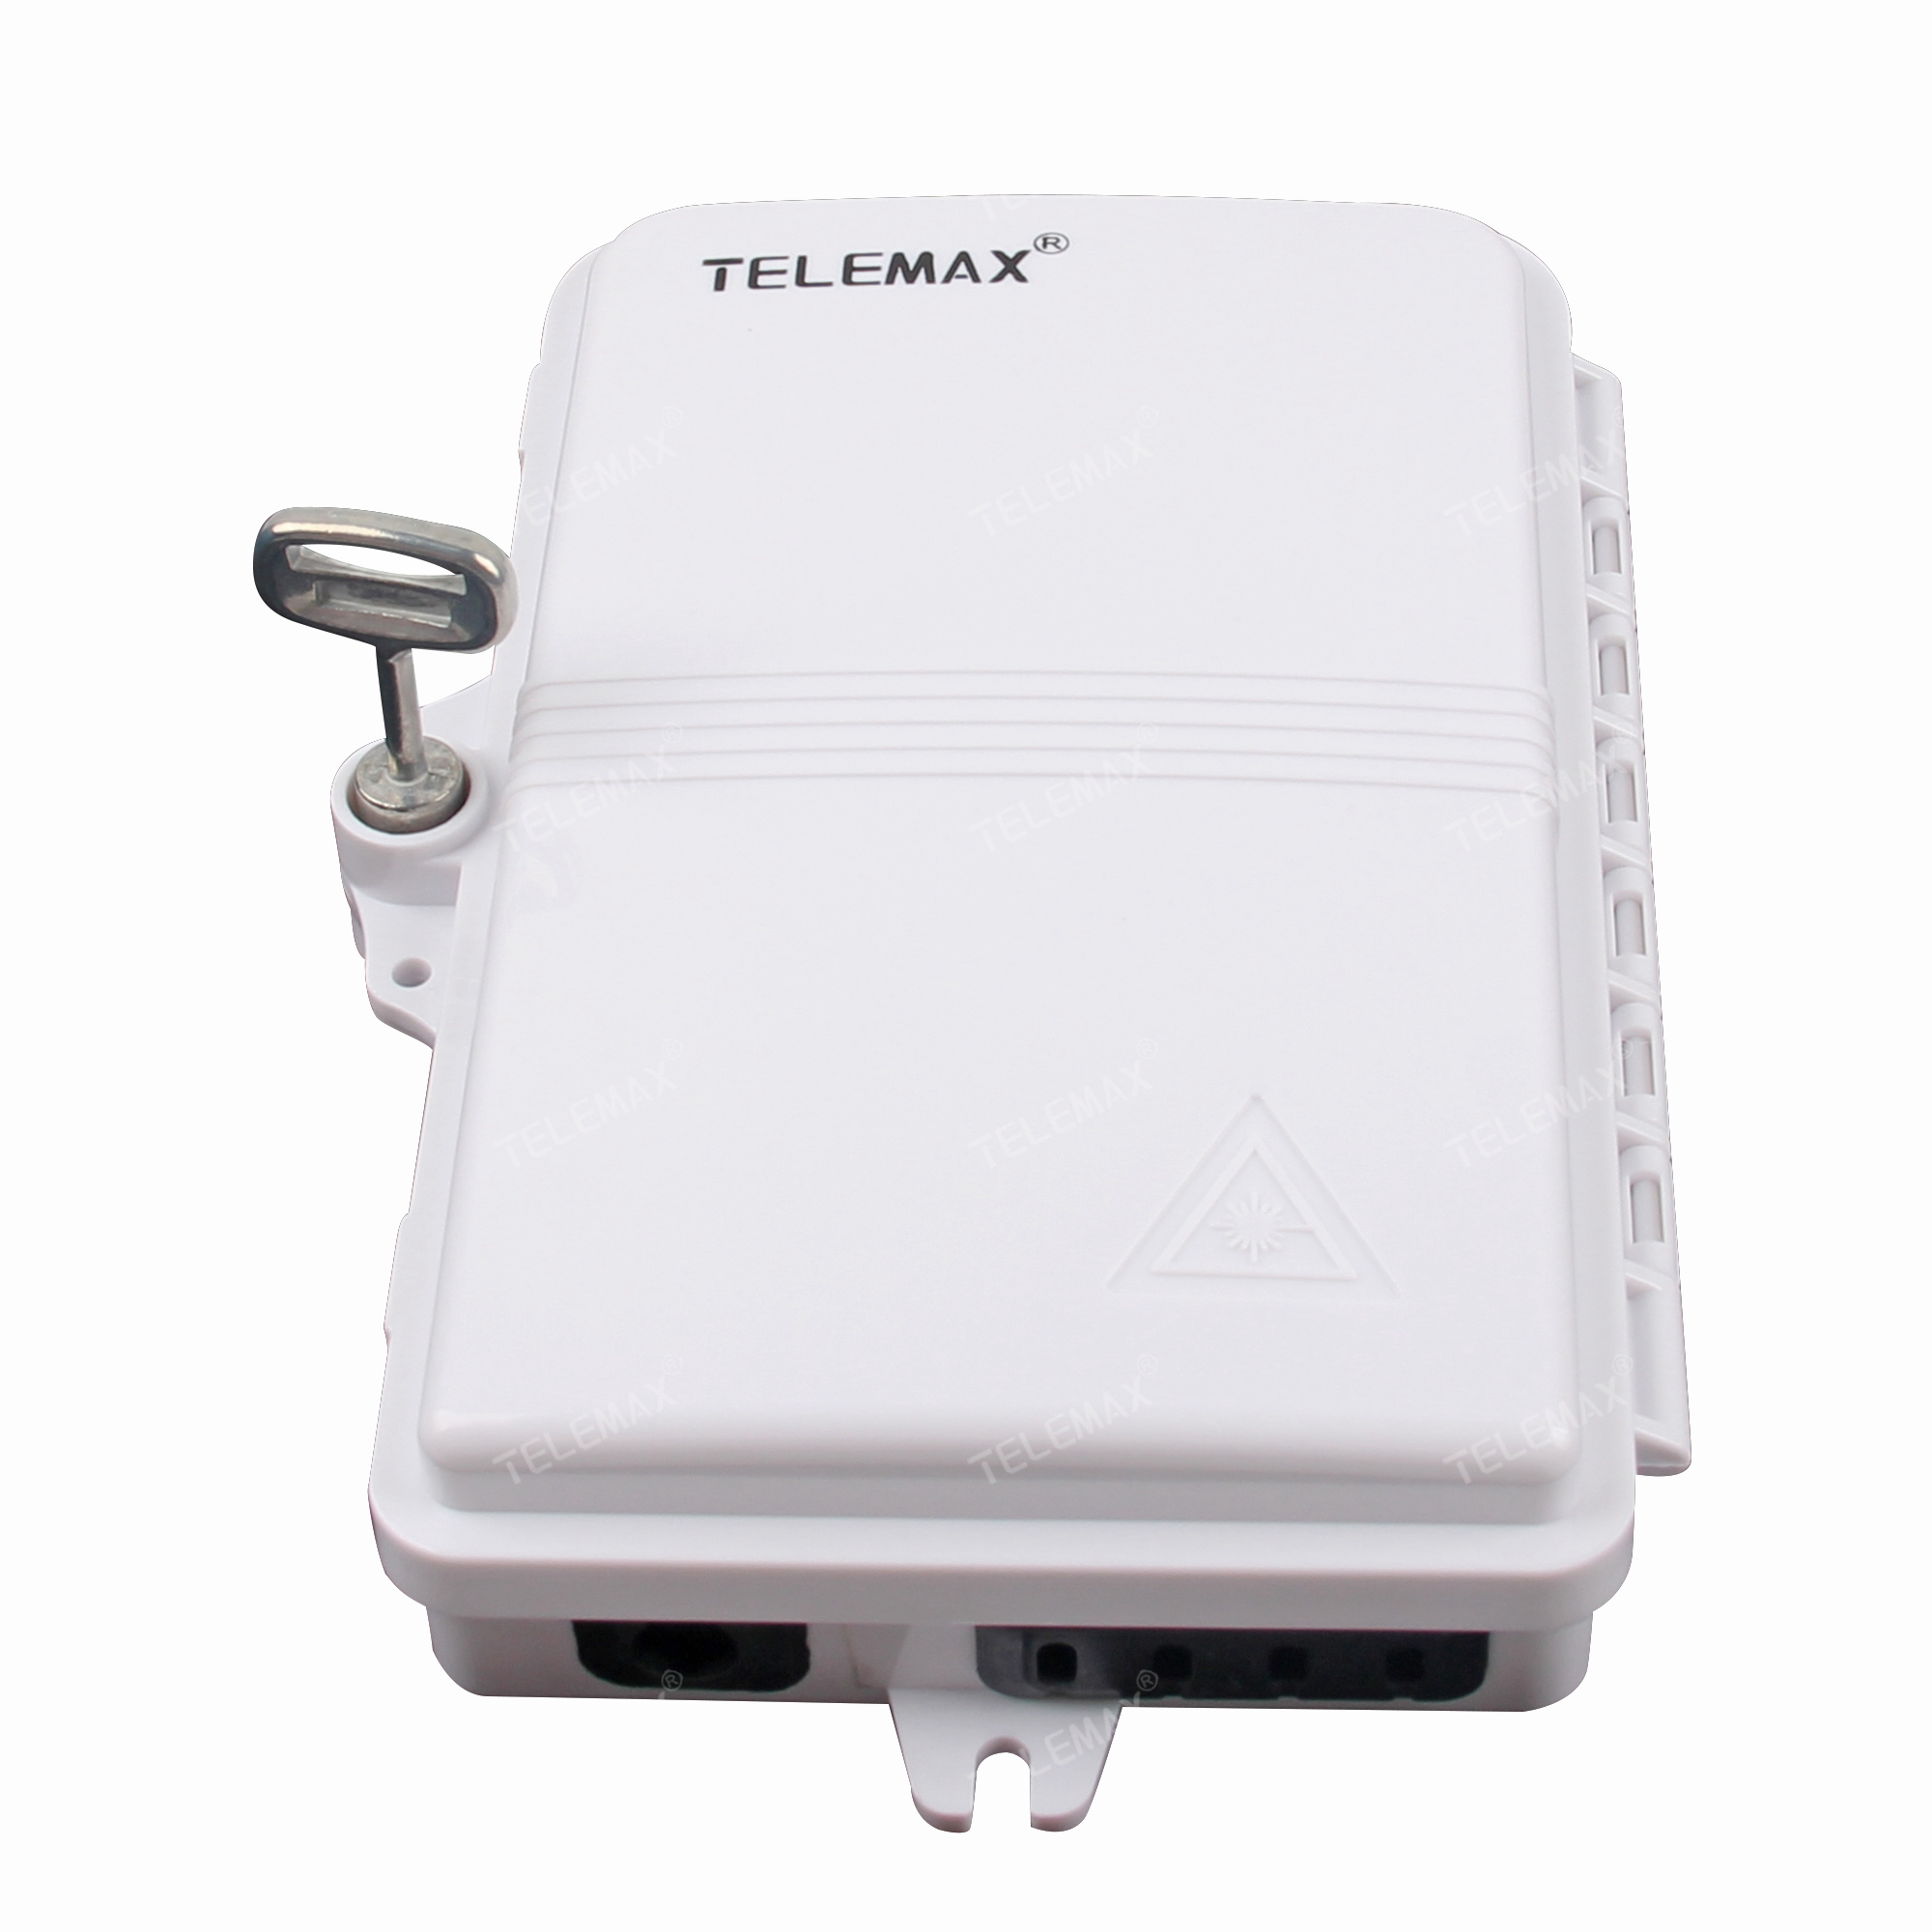 IP65 4F FTTH BOX ABS Material, Support 4 SC Simplex or 4 LC Duplex.